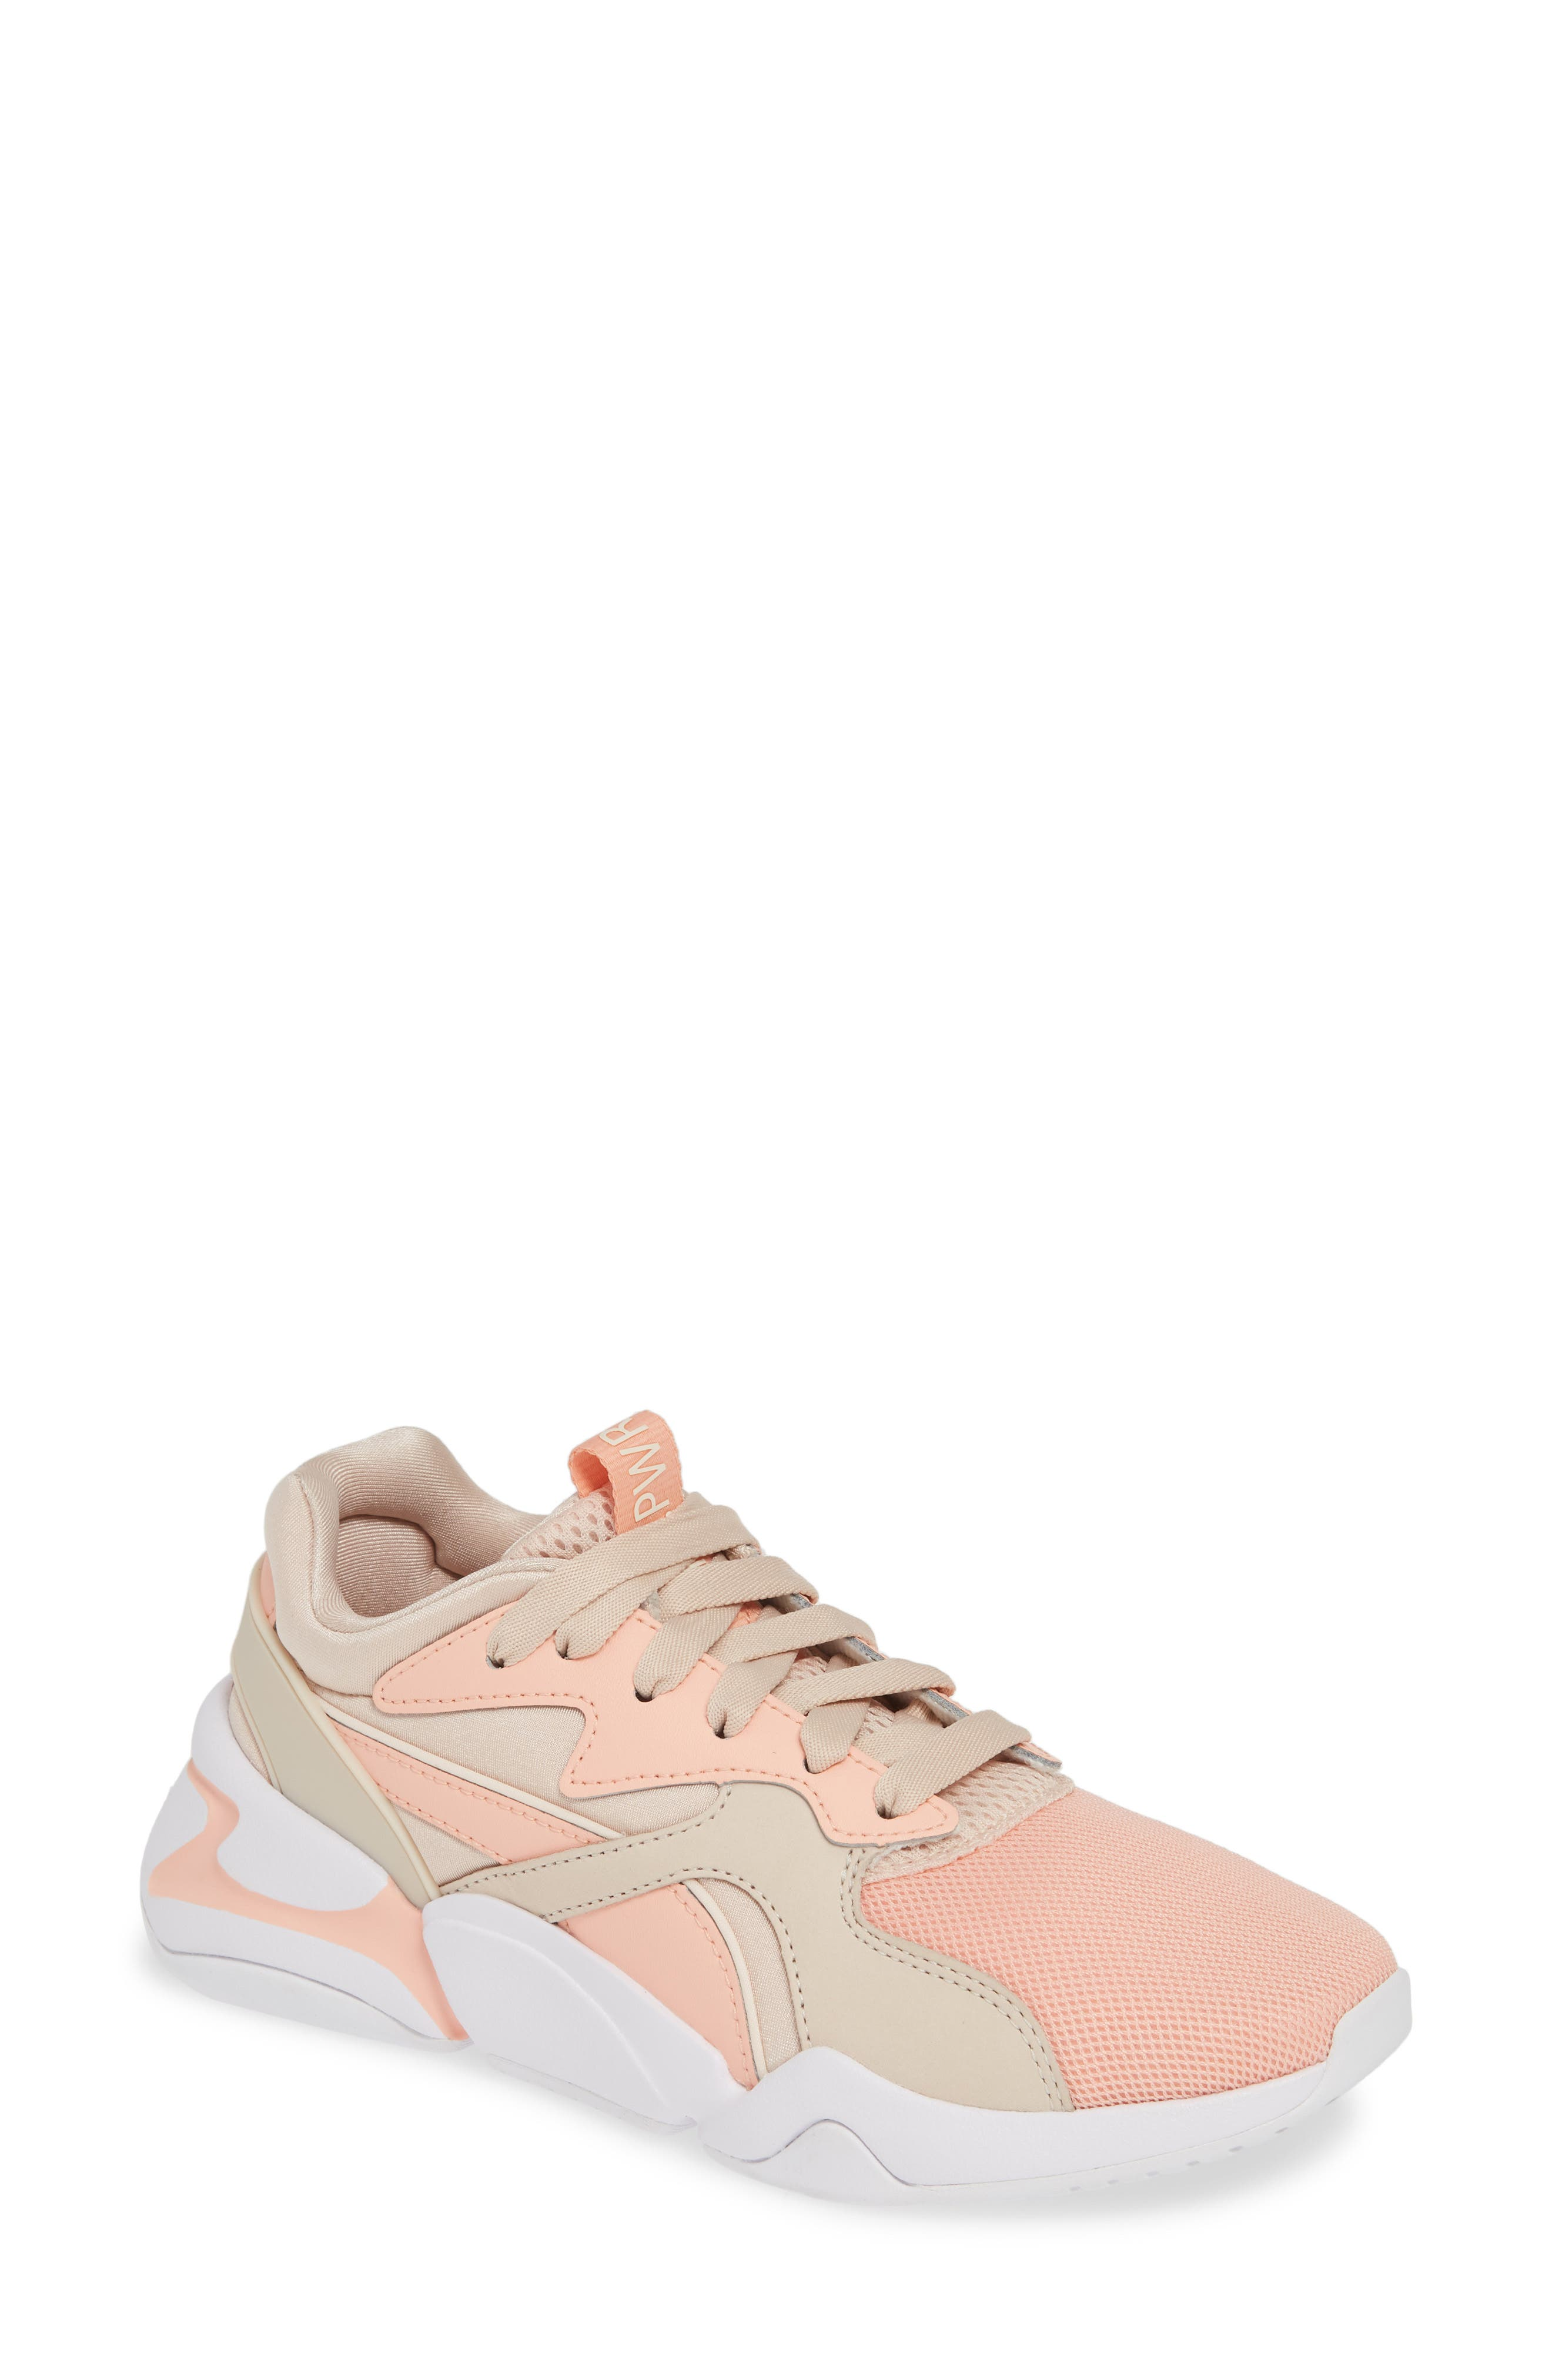 7d59fa848f7609 Puma Women S Nova Grl Pwr Low-Top Sneakers In Peach Bud  Pearl Blush ...